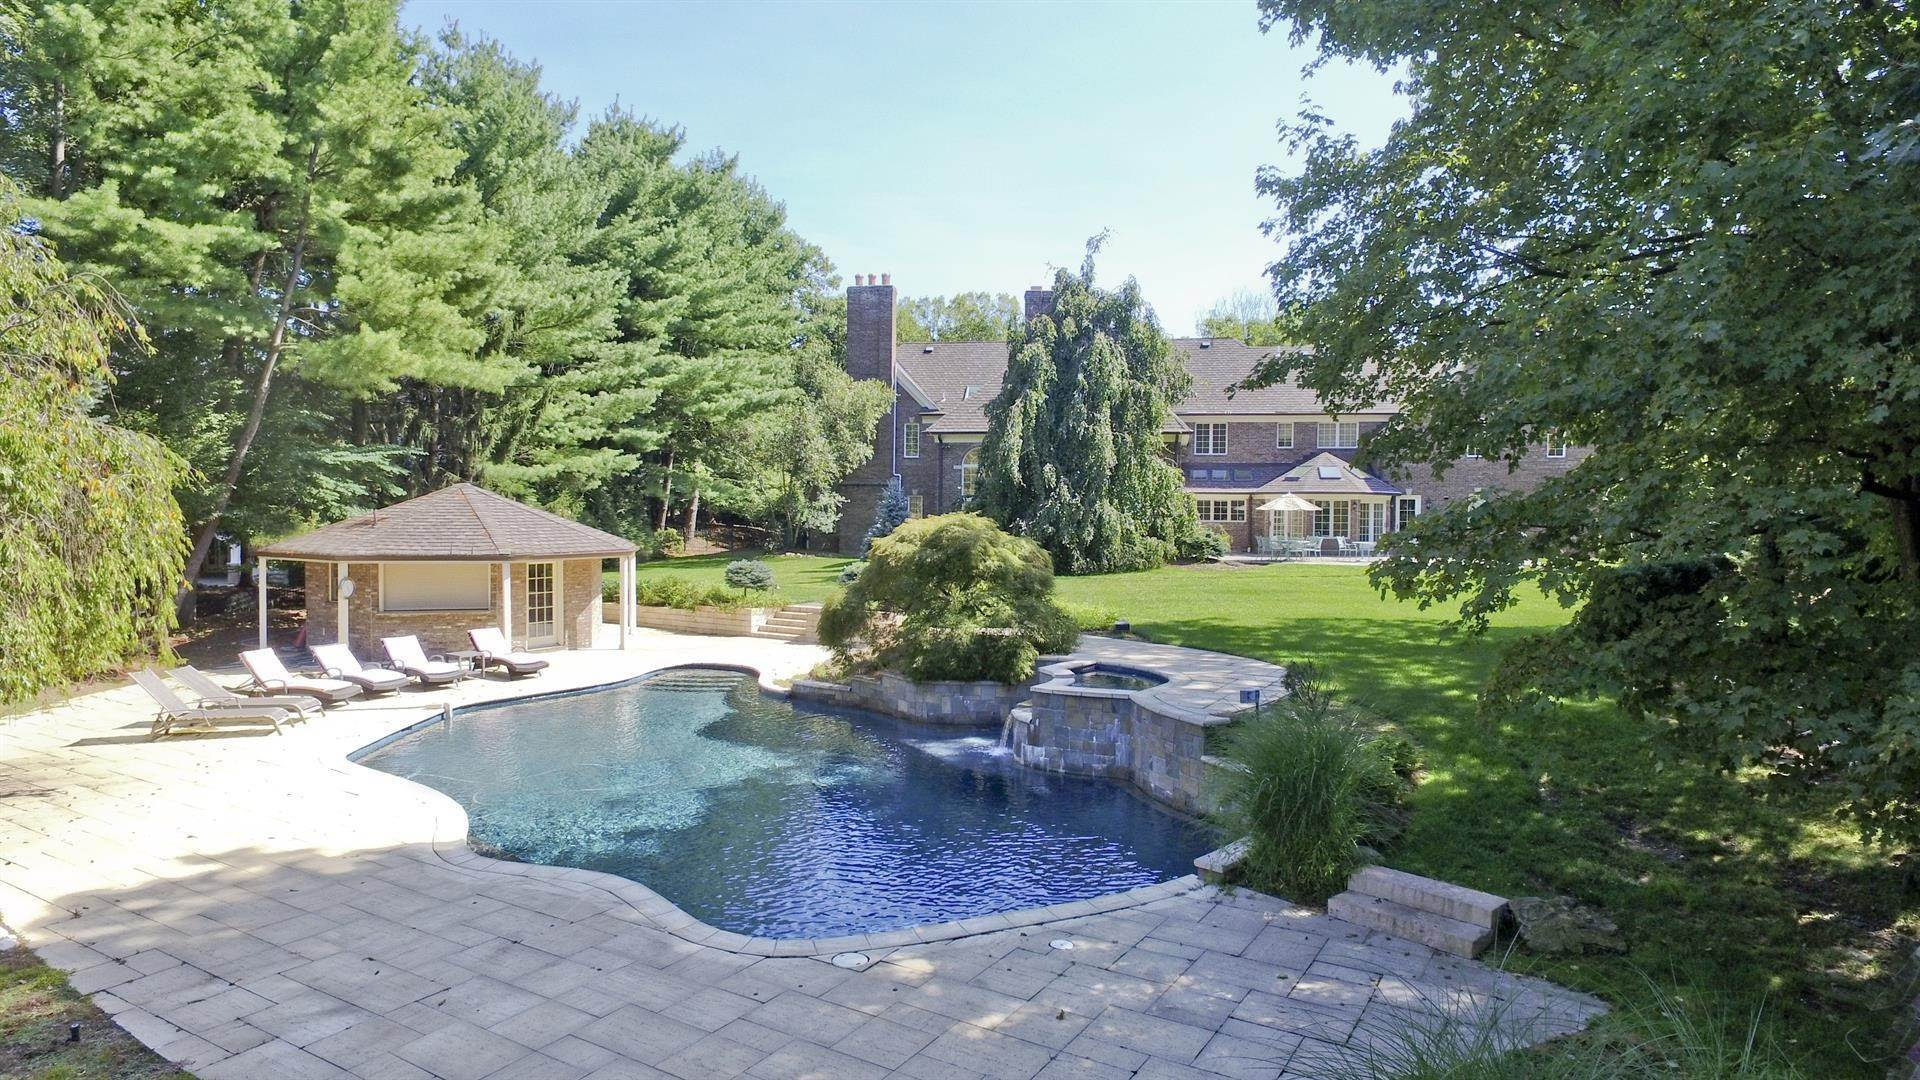 Single Family Home for Sale at Prime Location Franklin Lakes, New Jersey,07417 United States